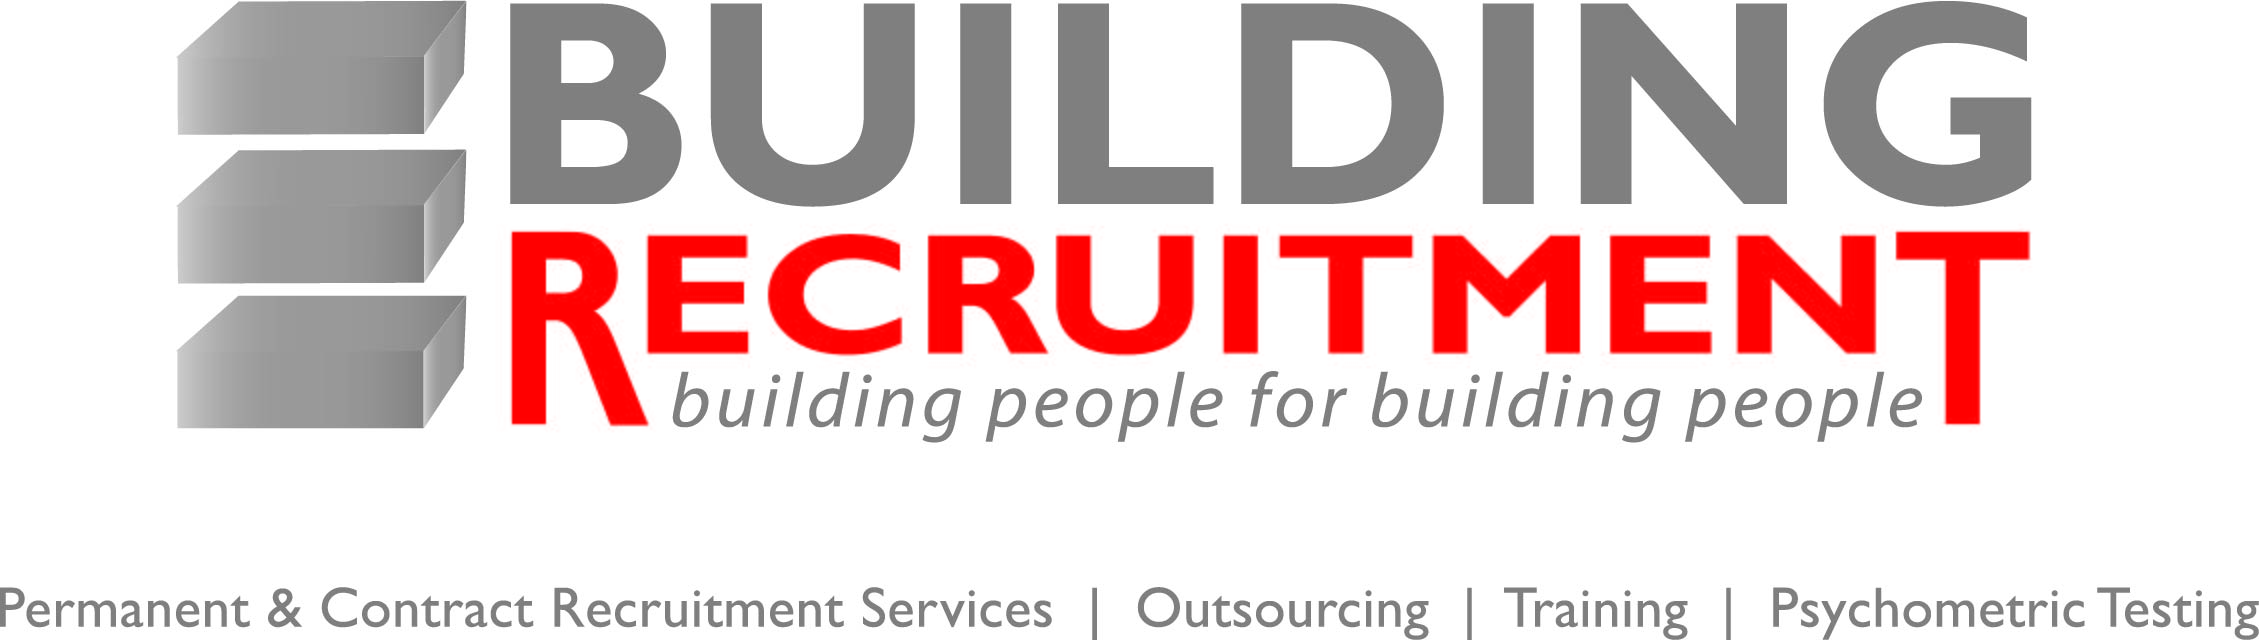 Building Recruitment 17